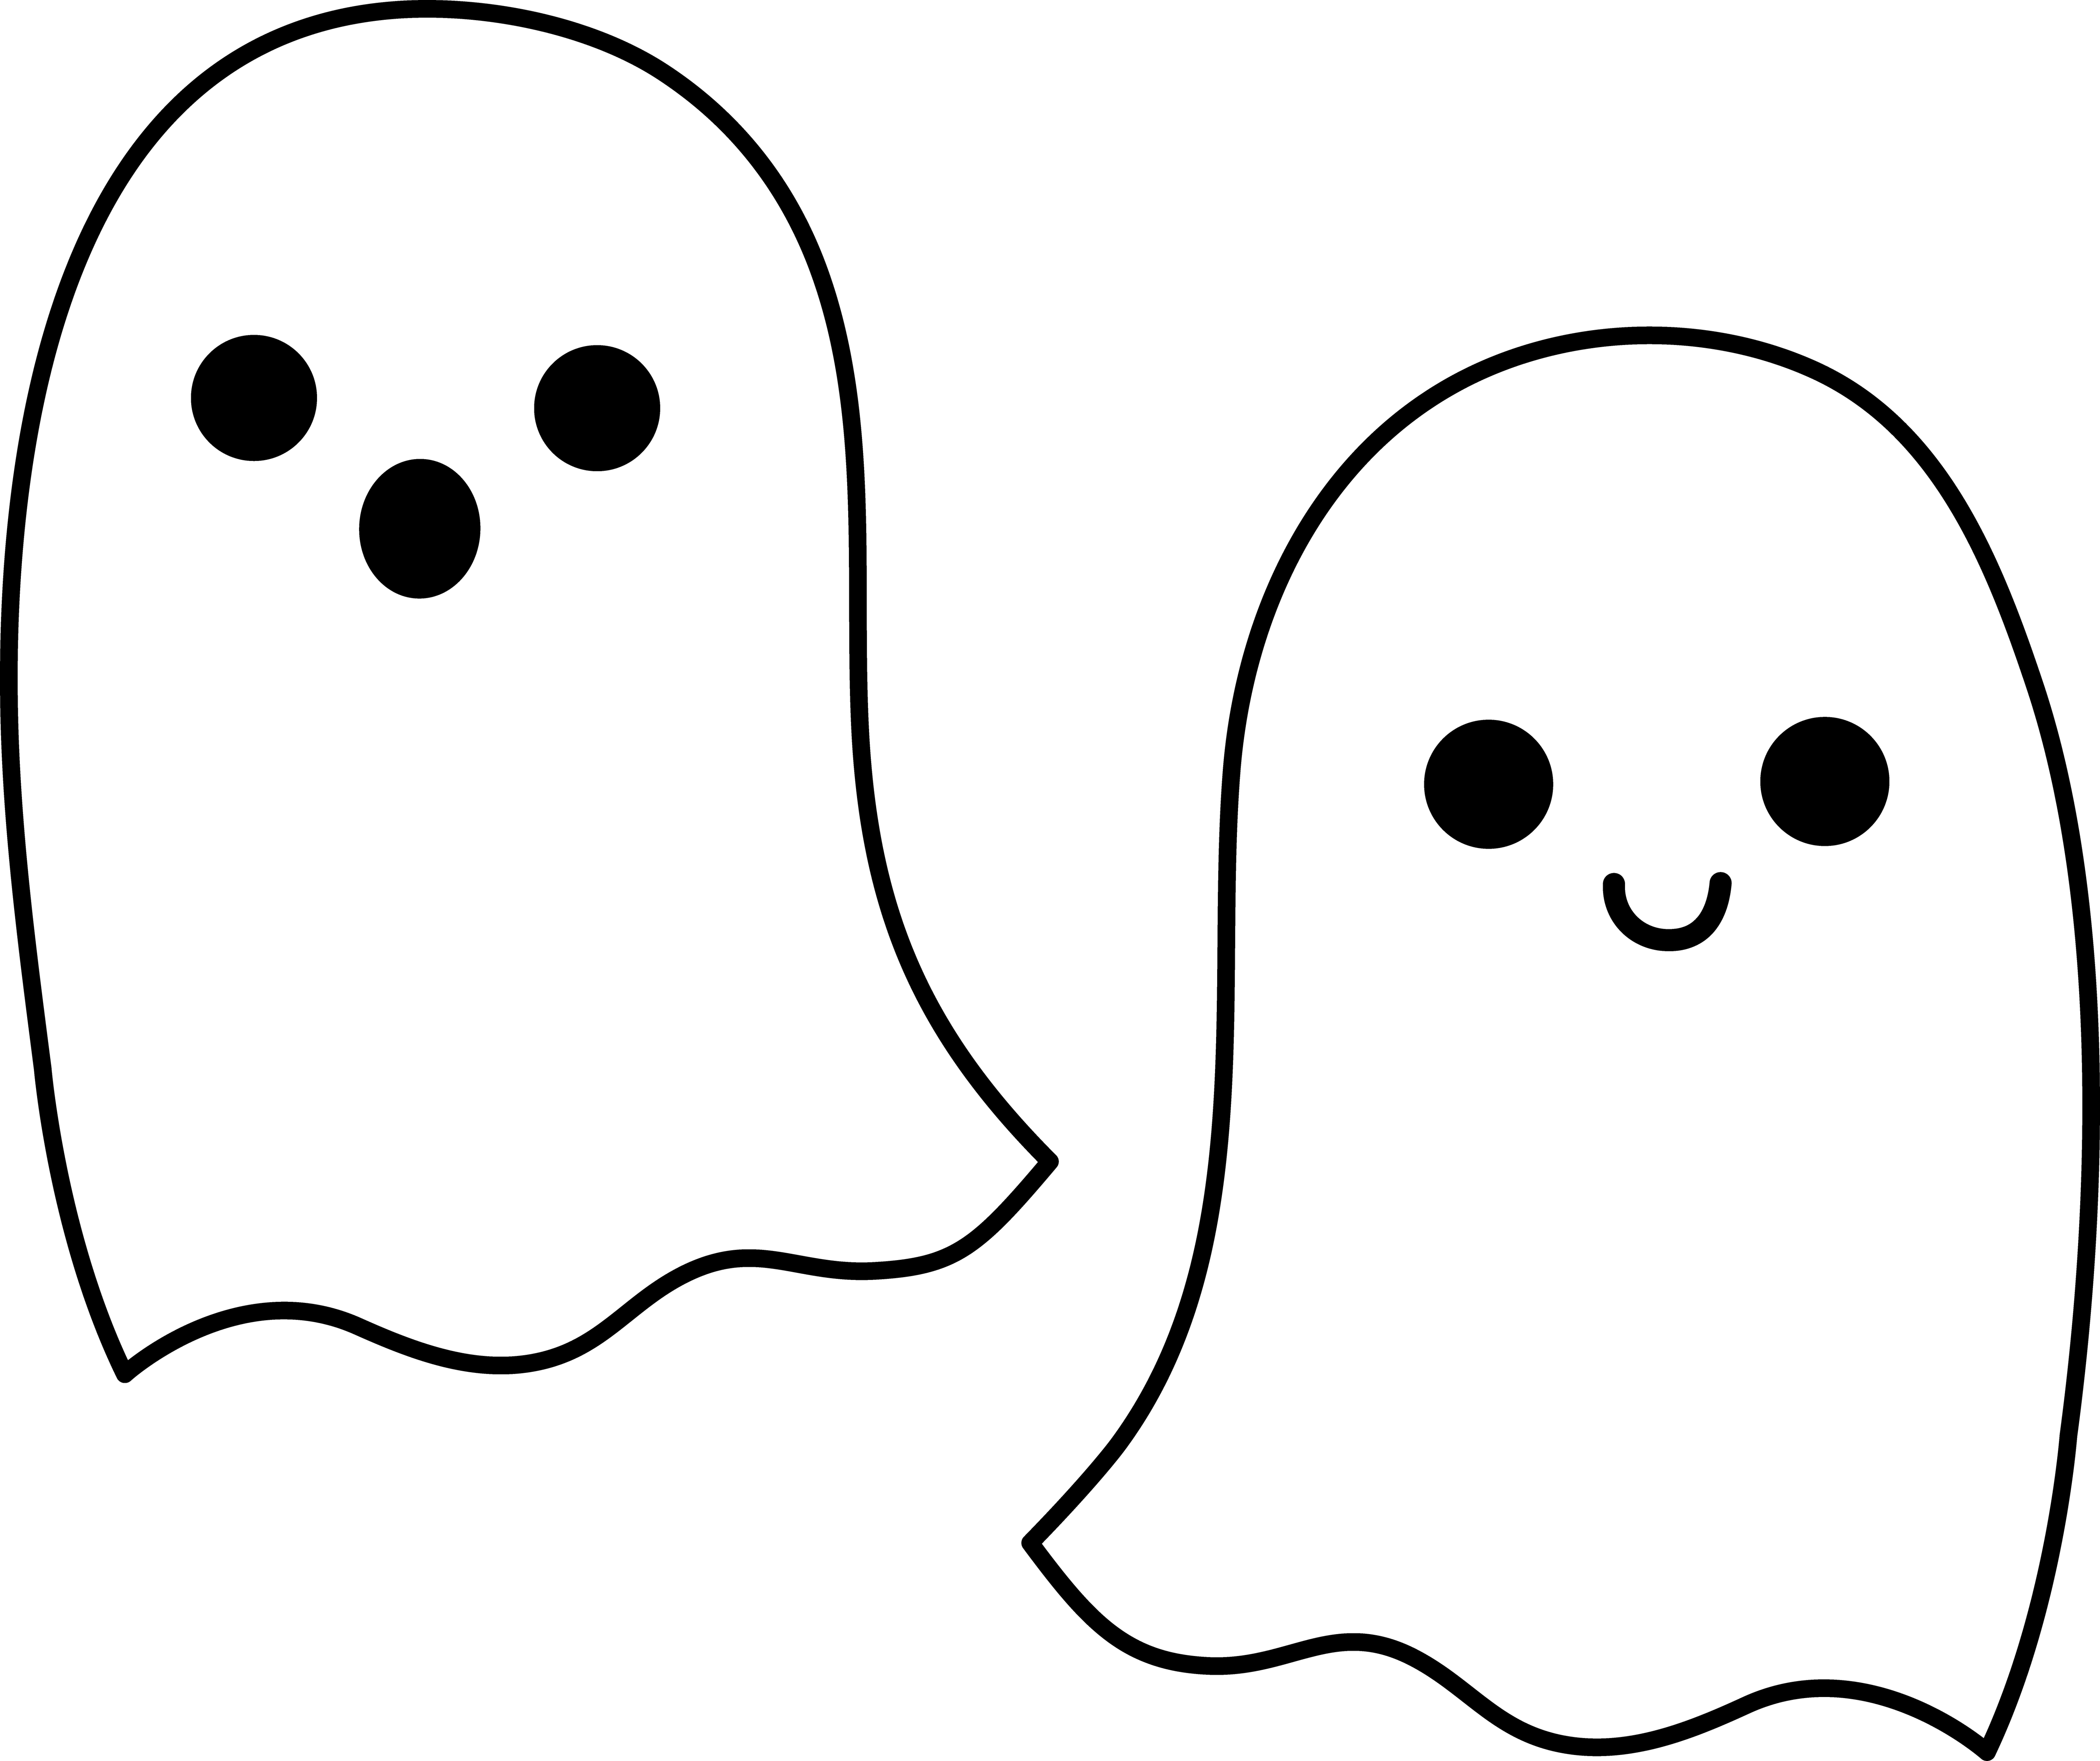 Download free transparent image. Ghost cartoon png svg library stock